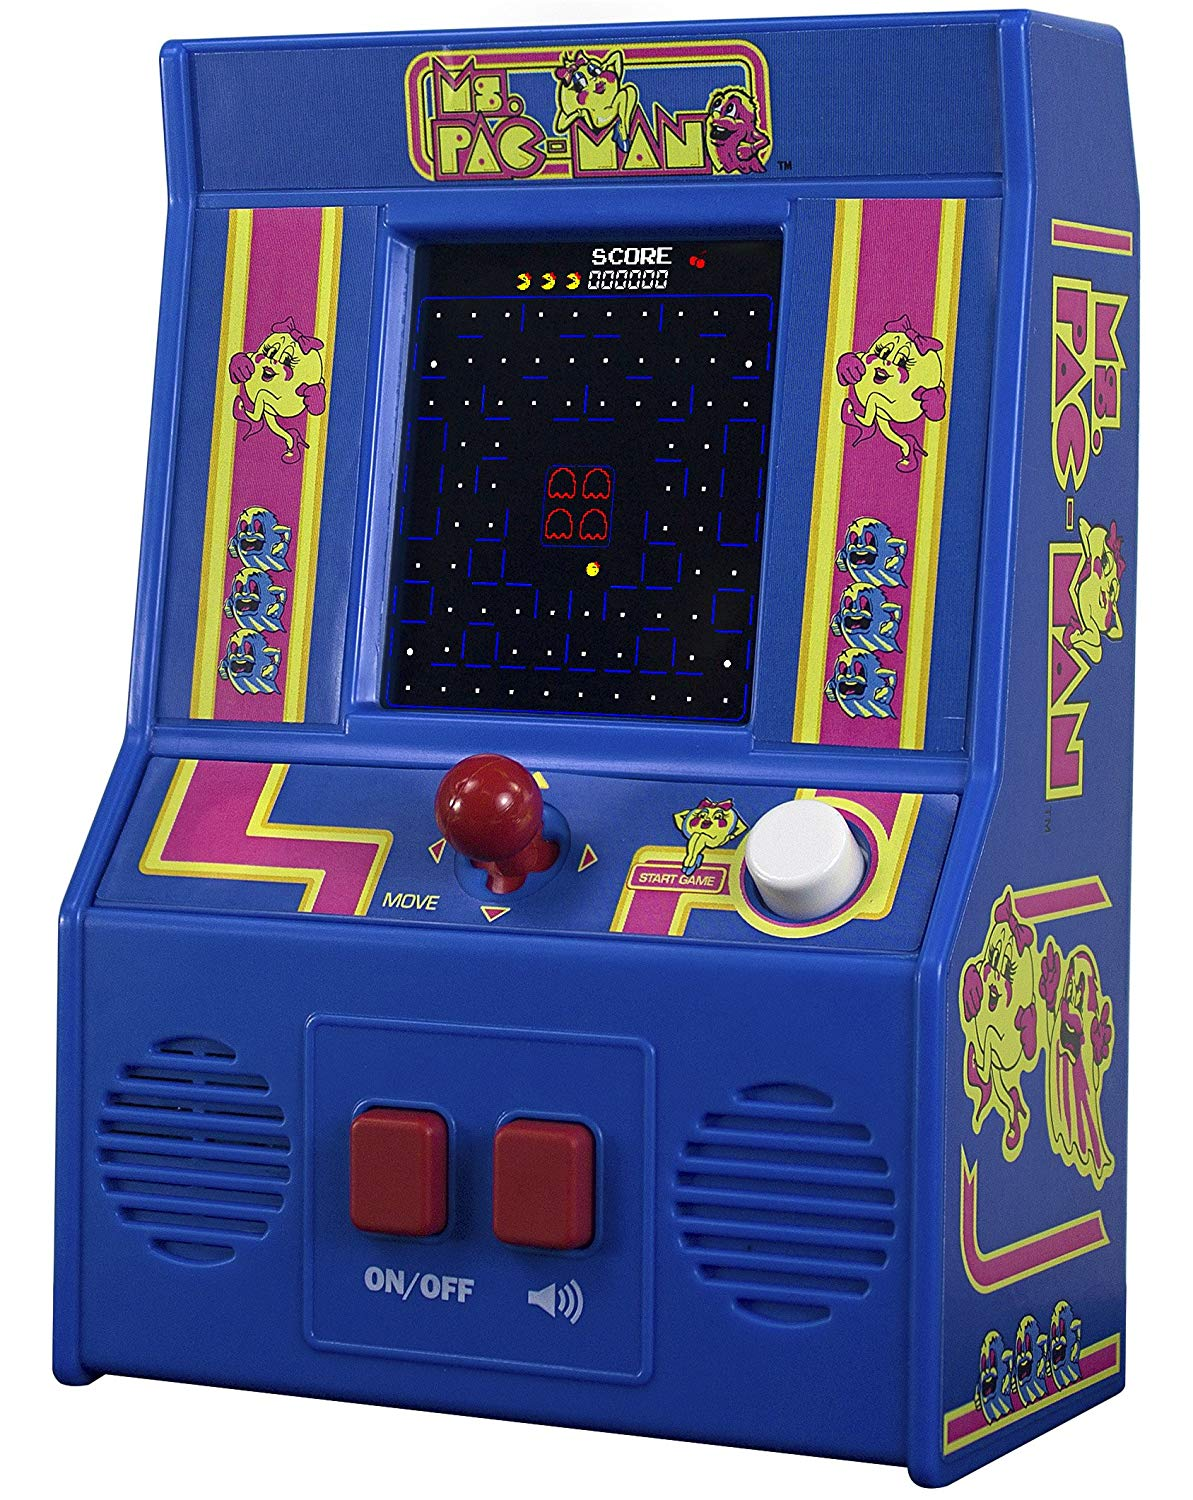 Basic Fun! 09614 Ms Pac-man Mini Arcade Game (4C Sceen), Multicolour